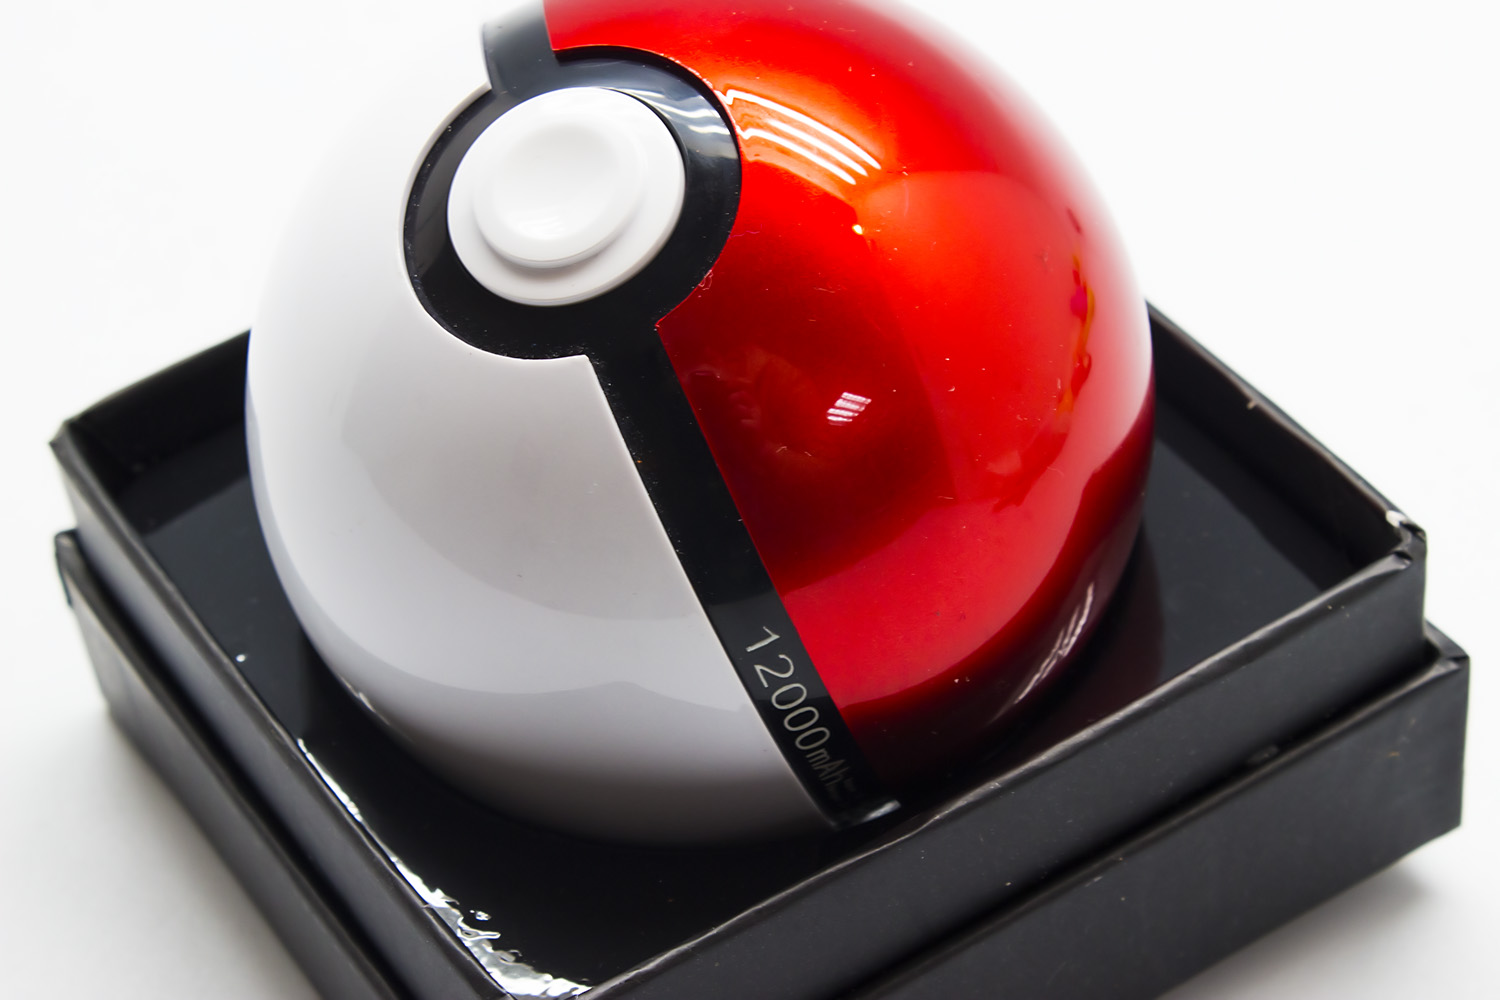 Pokeball powerbank 1000 mAh